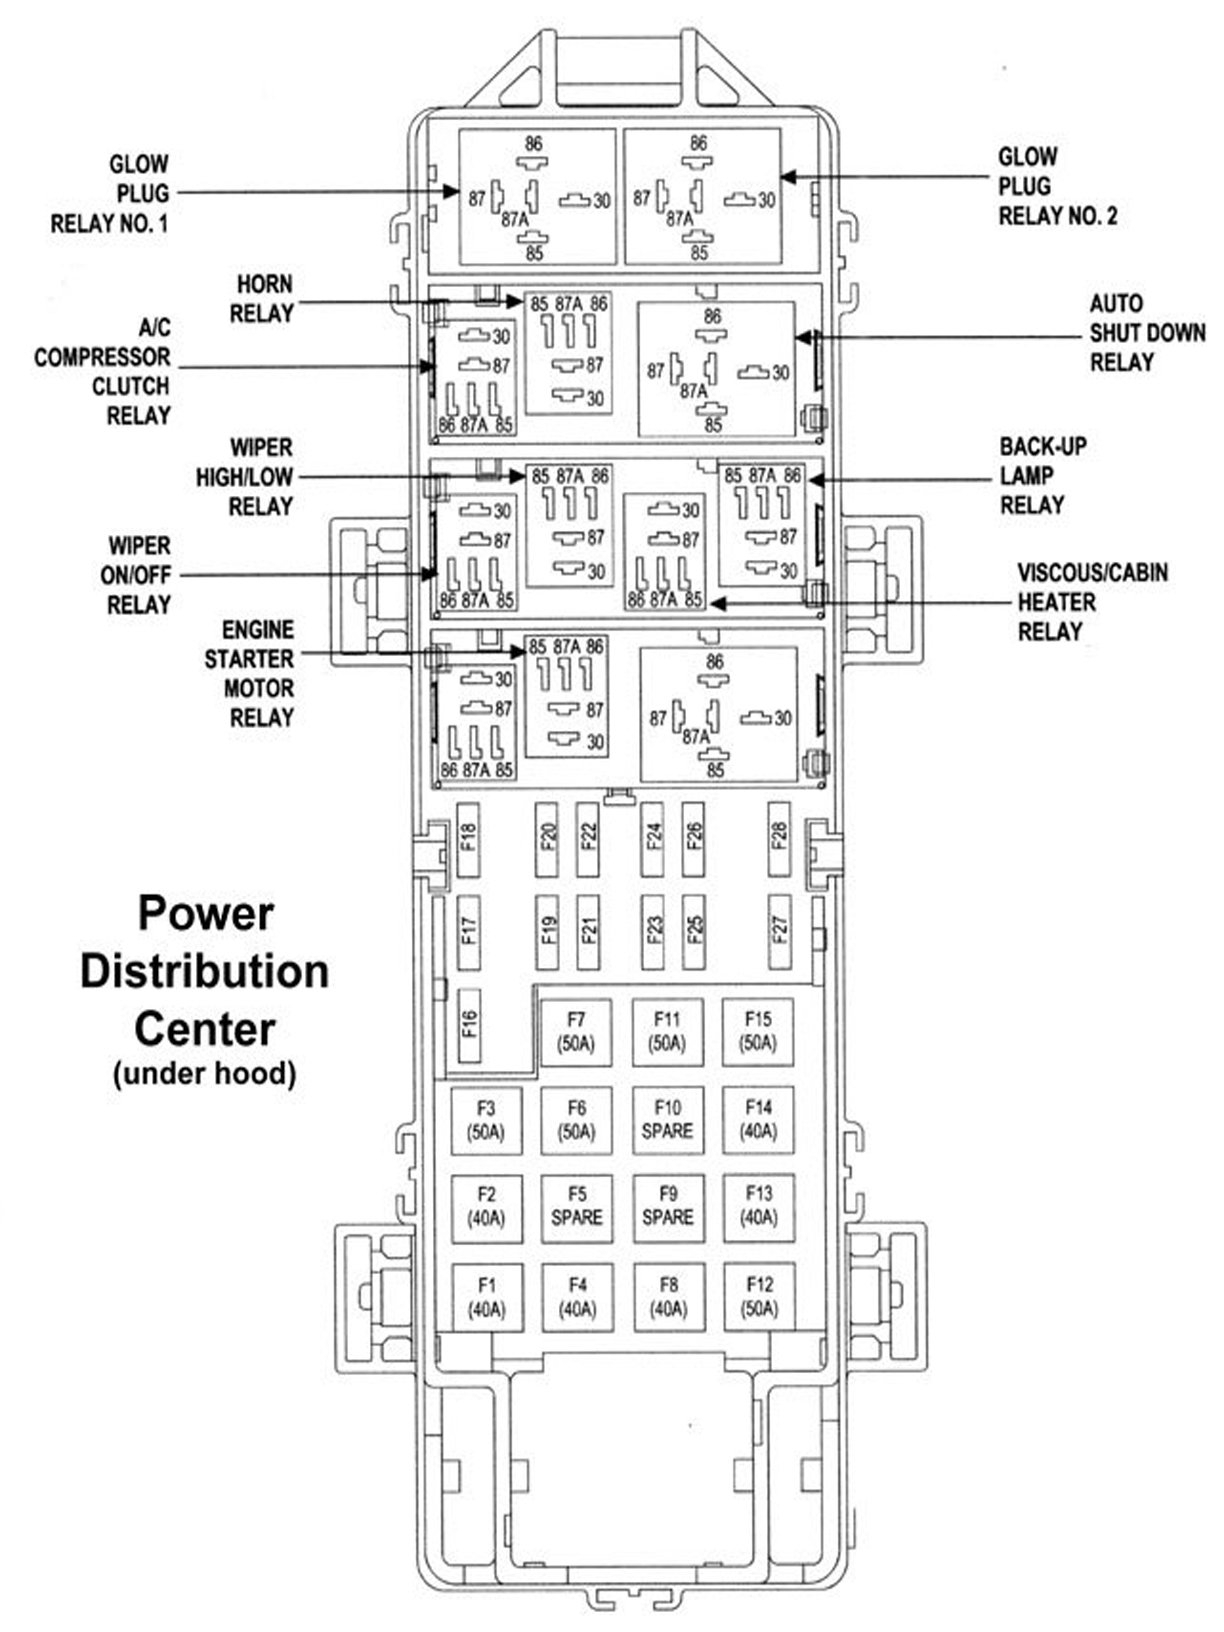 jeep grand cherokee wj 1999 to 2004 fuse box diagram cherokeeforum intended for 1998 jeep grand cherokee parts diagram jeep grand cherokee wj 1999 to 2004 fuse box diagram 2003 jeep grand cherokee fuse box at bakdesigns.co